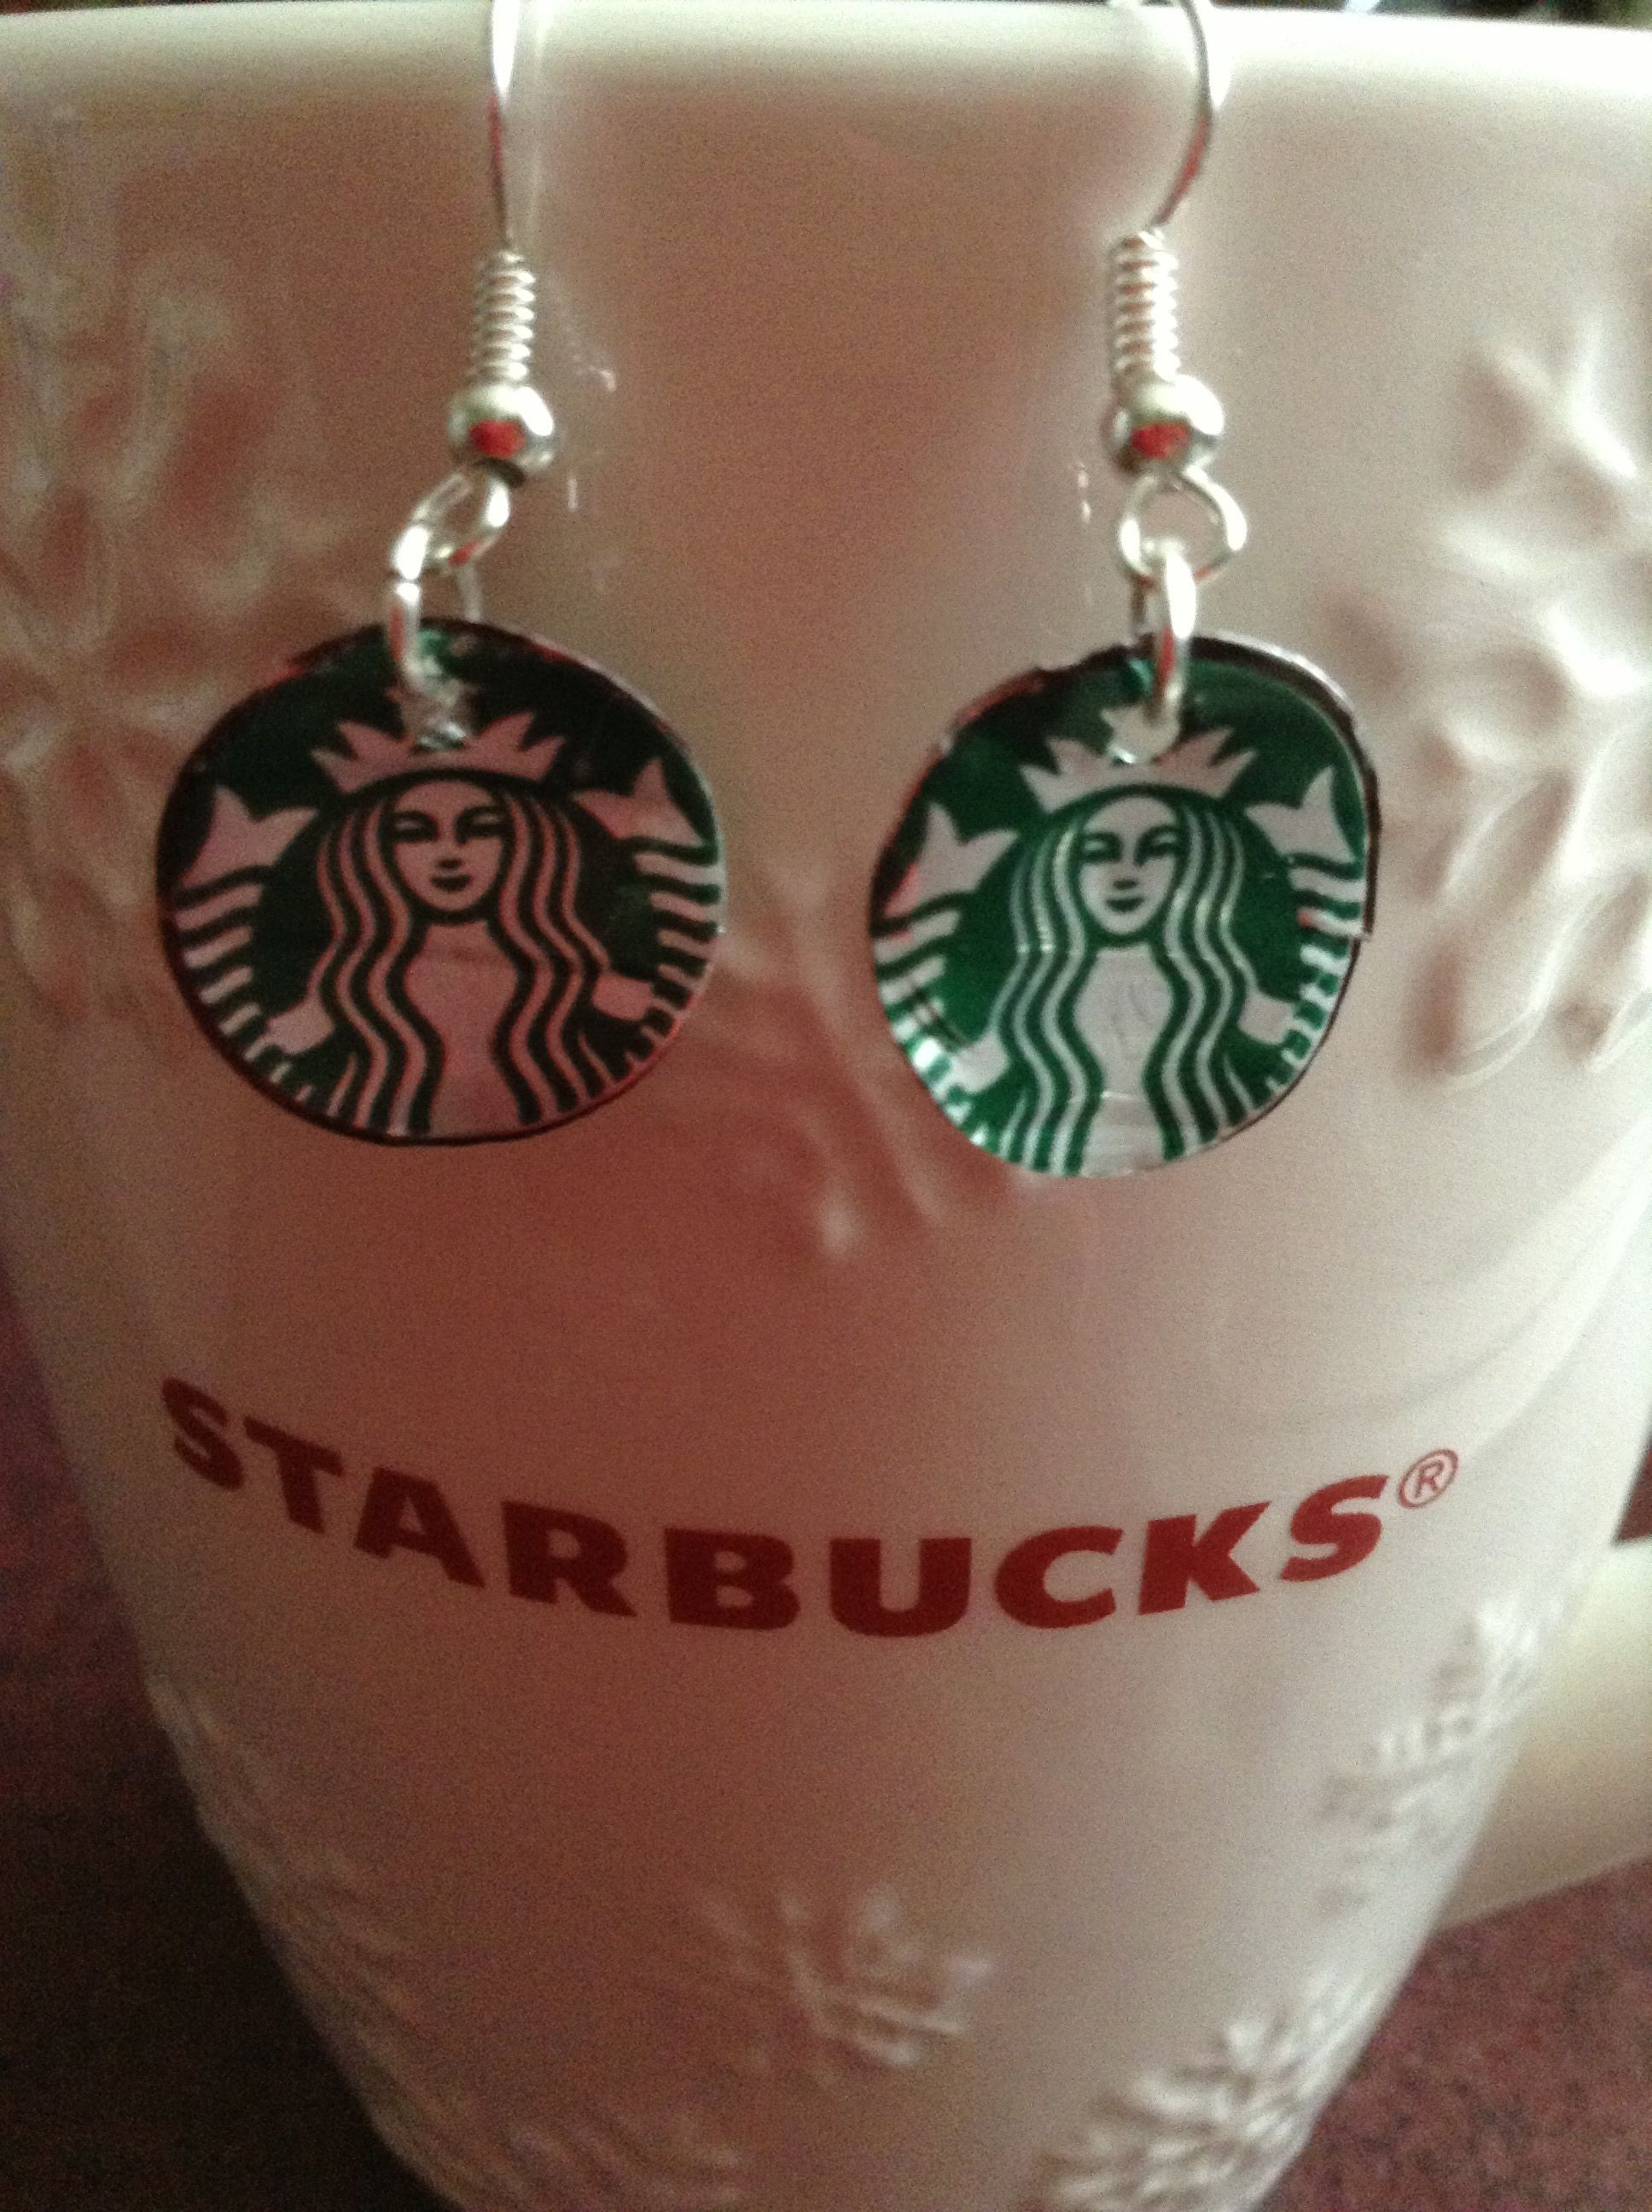 Starbucks Earrings made for cans. Christmas ornaments